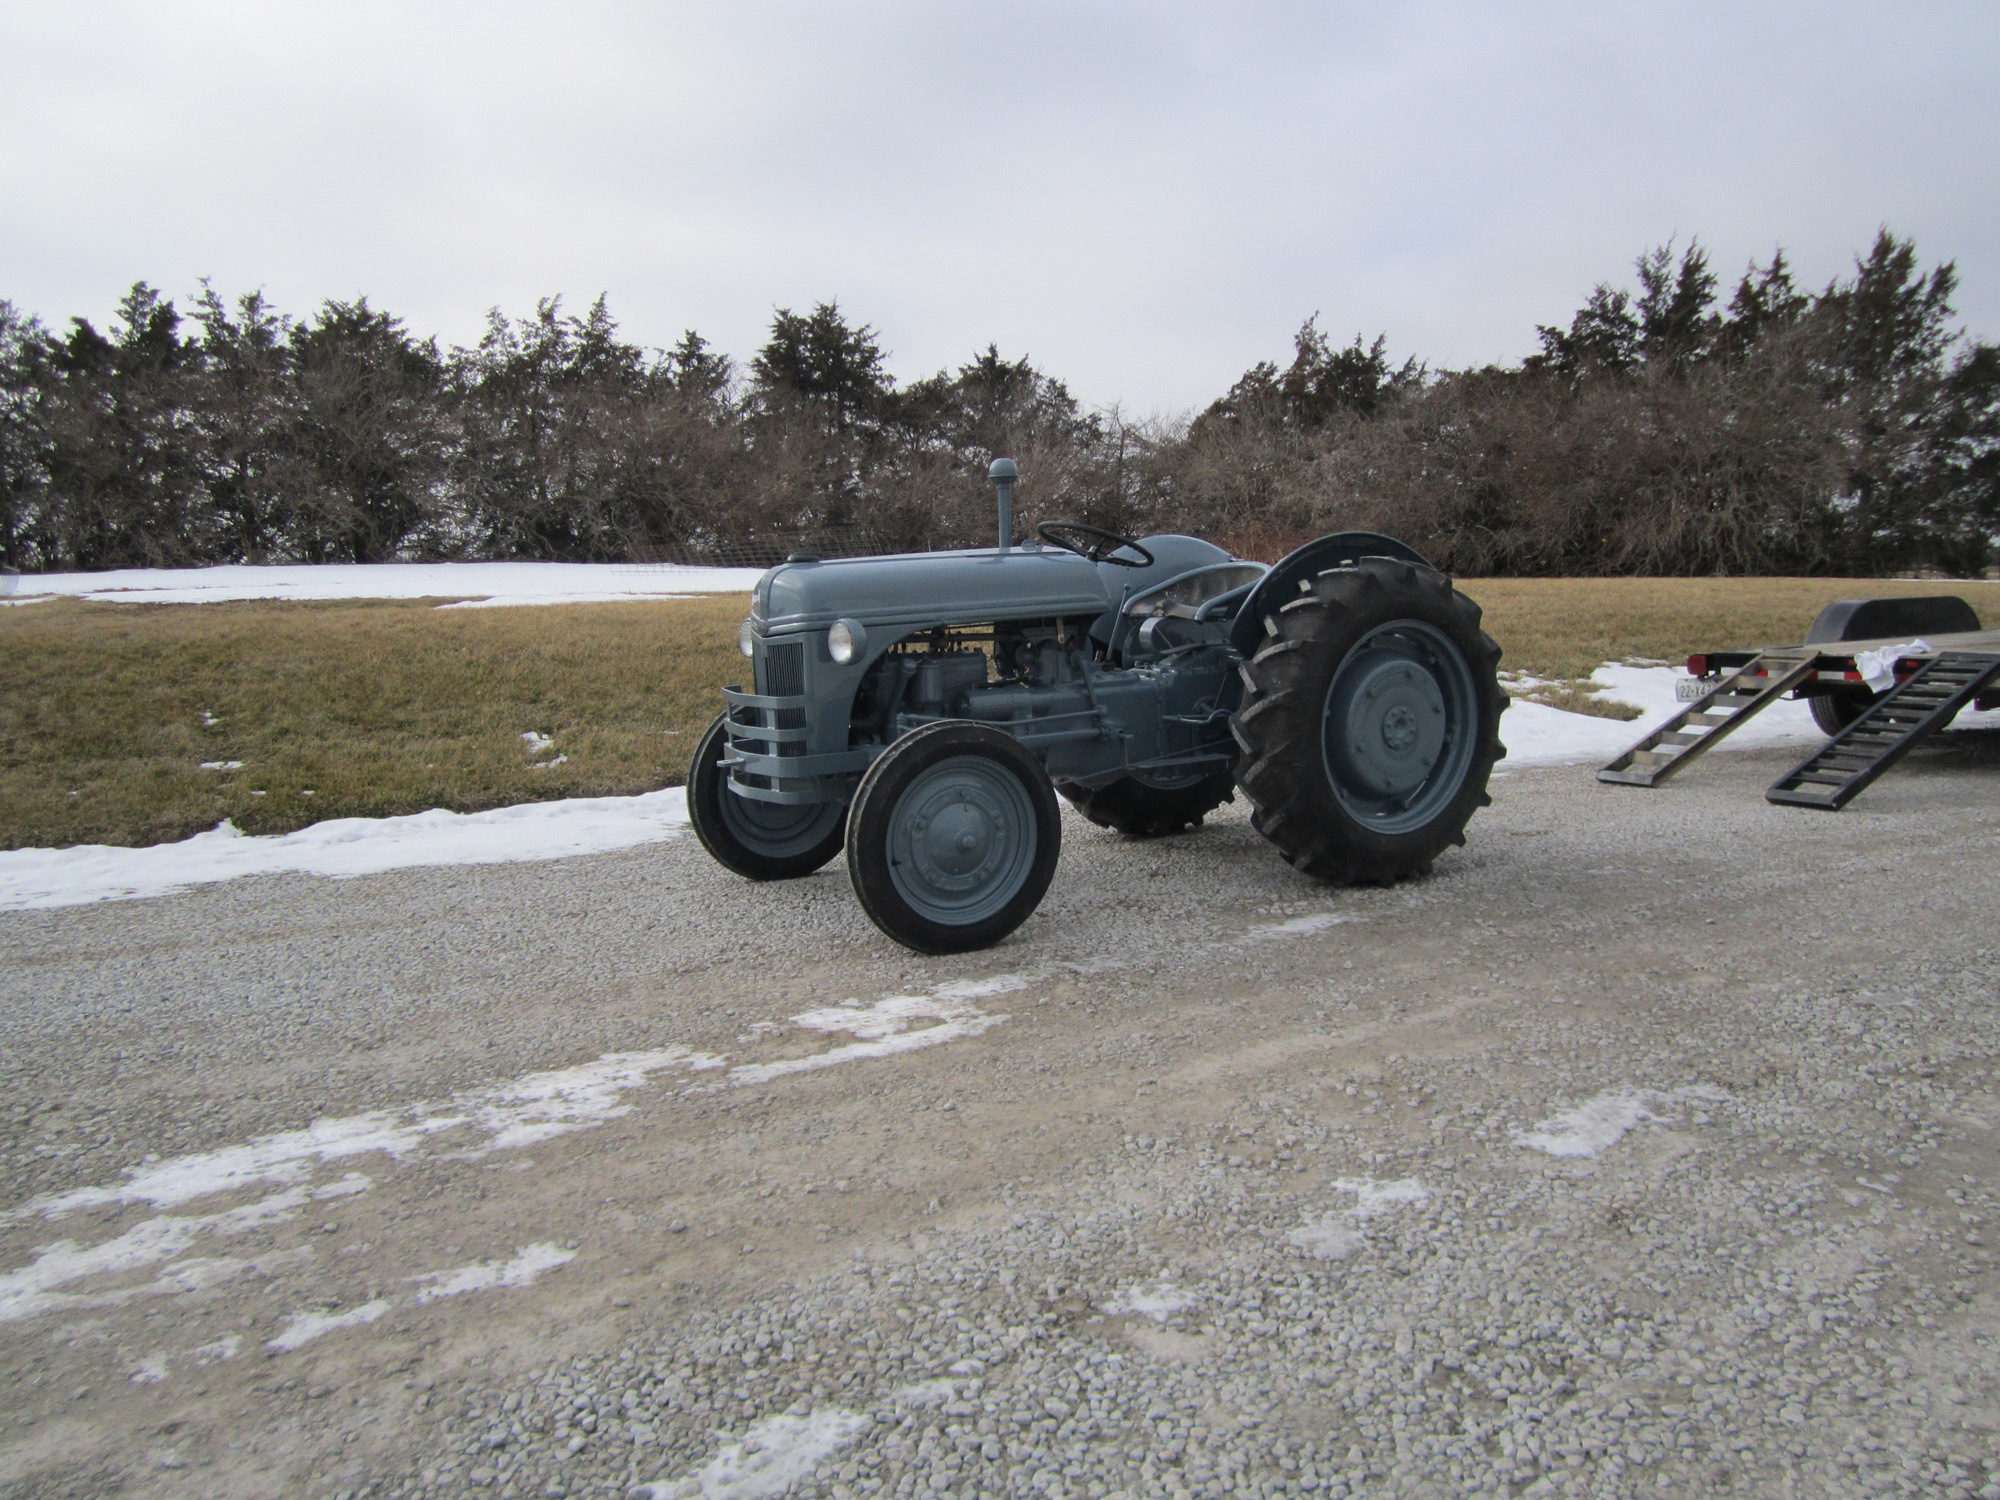 View of a tractor after affordable sandblasting service in Dorchester, NE